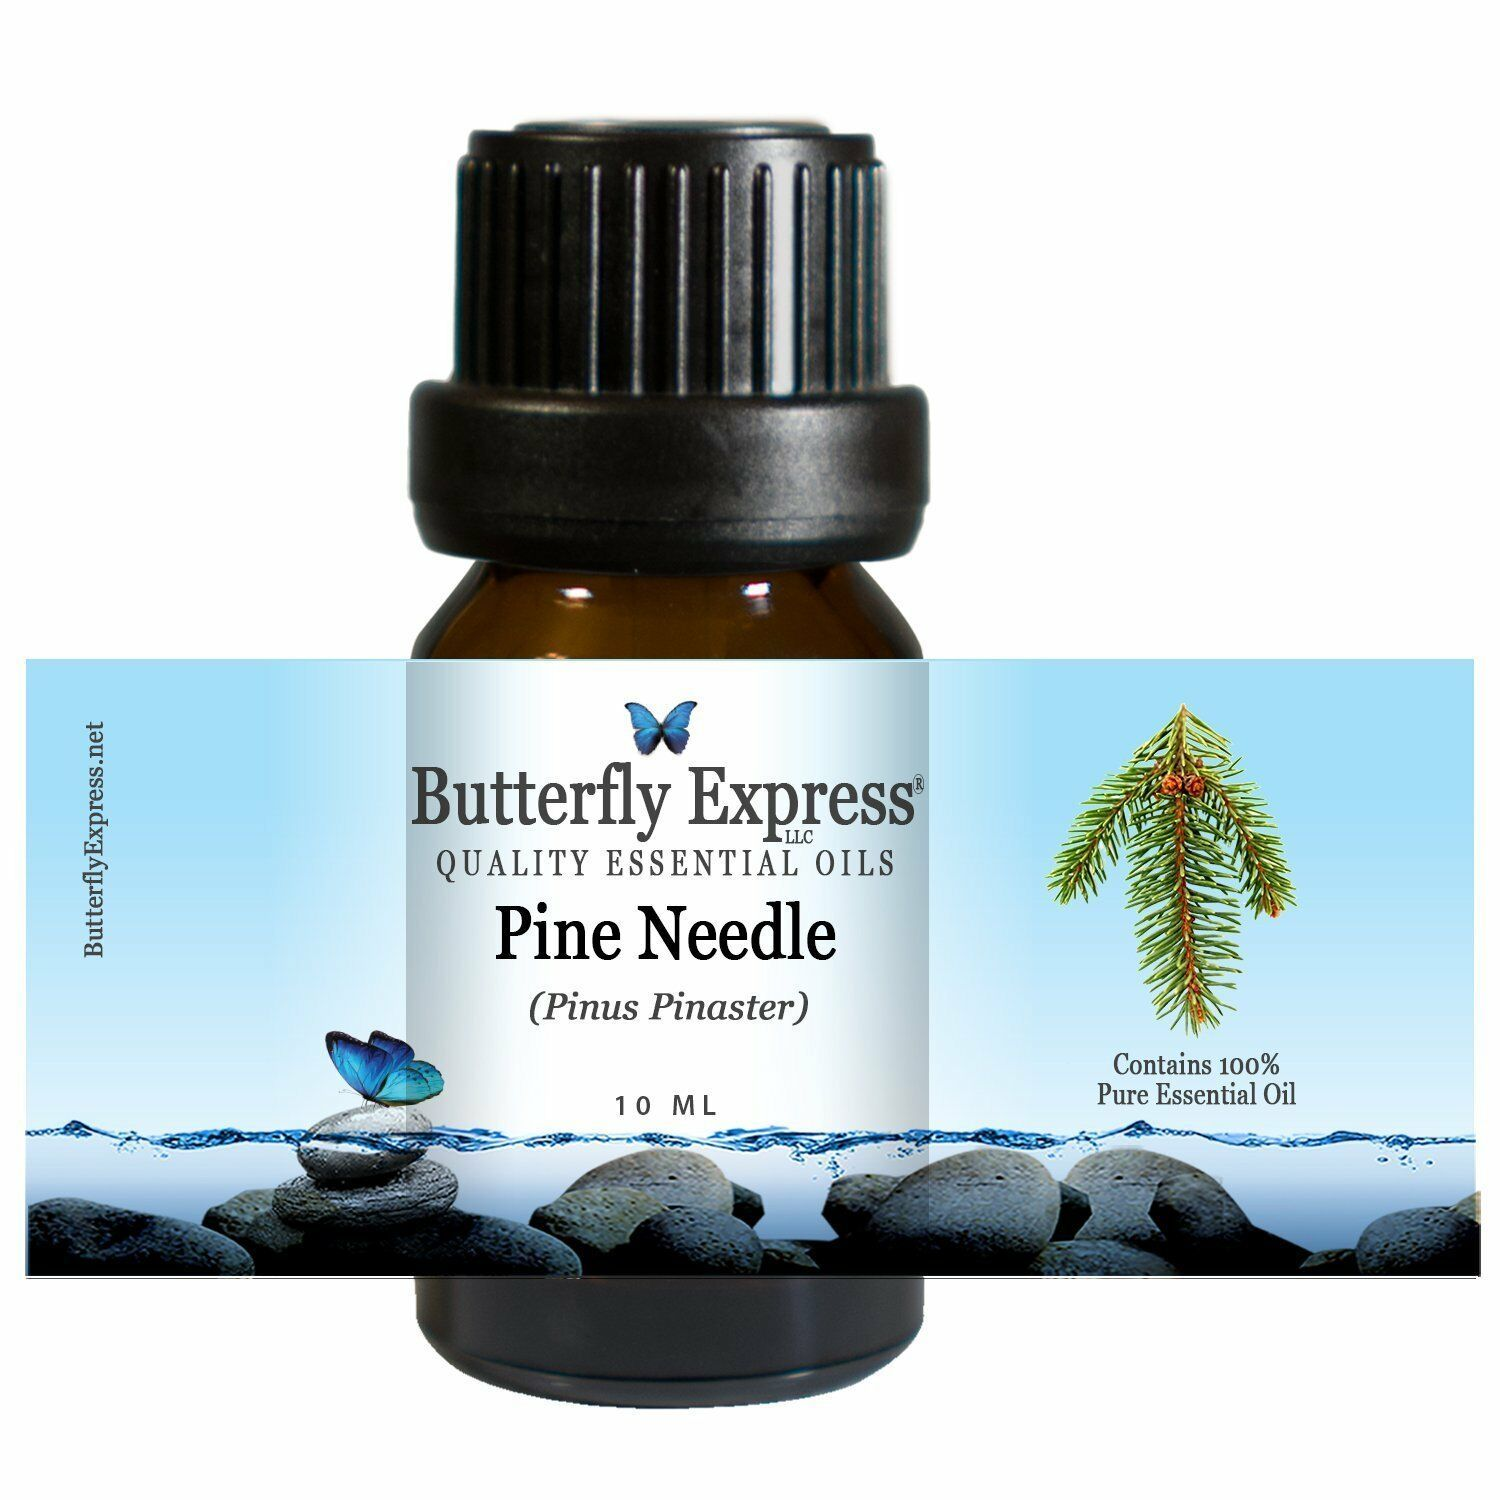 Pine Needle Essential Oil 100% Pure Butterfly Express circulation sore joints